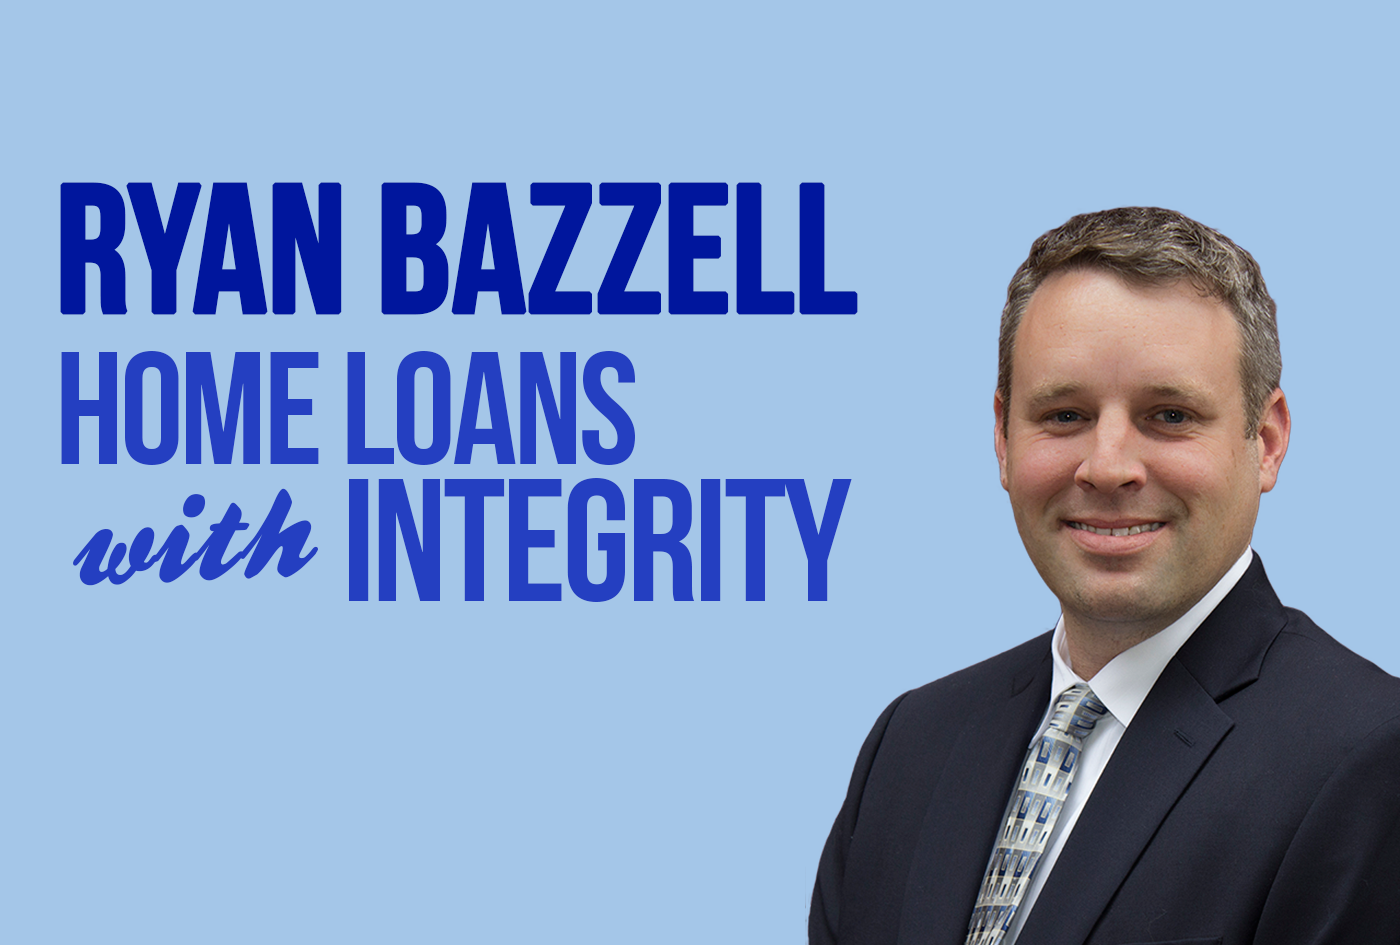 Ryan-Bazzell-slider2 | Home Loans with Integrity